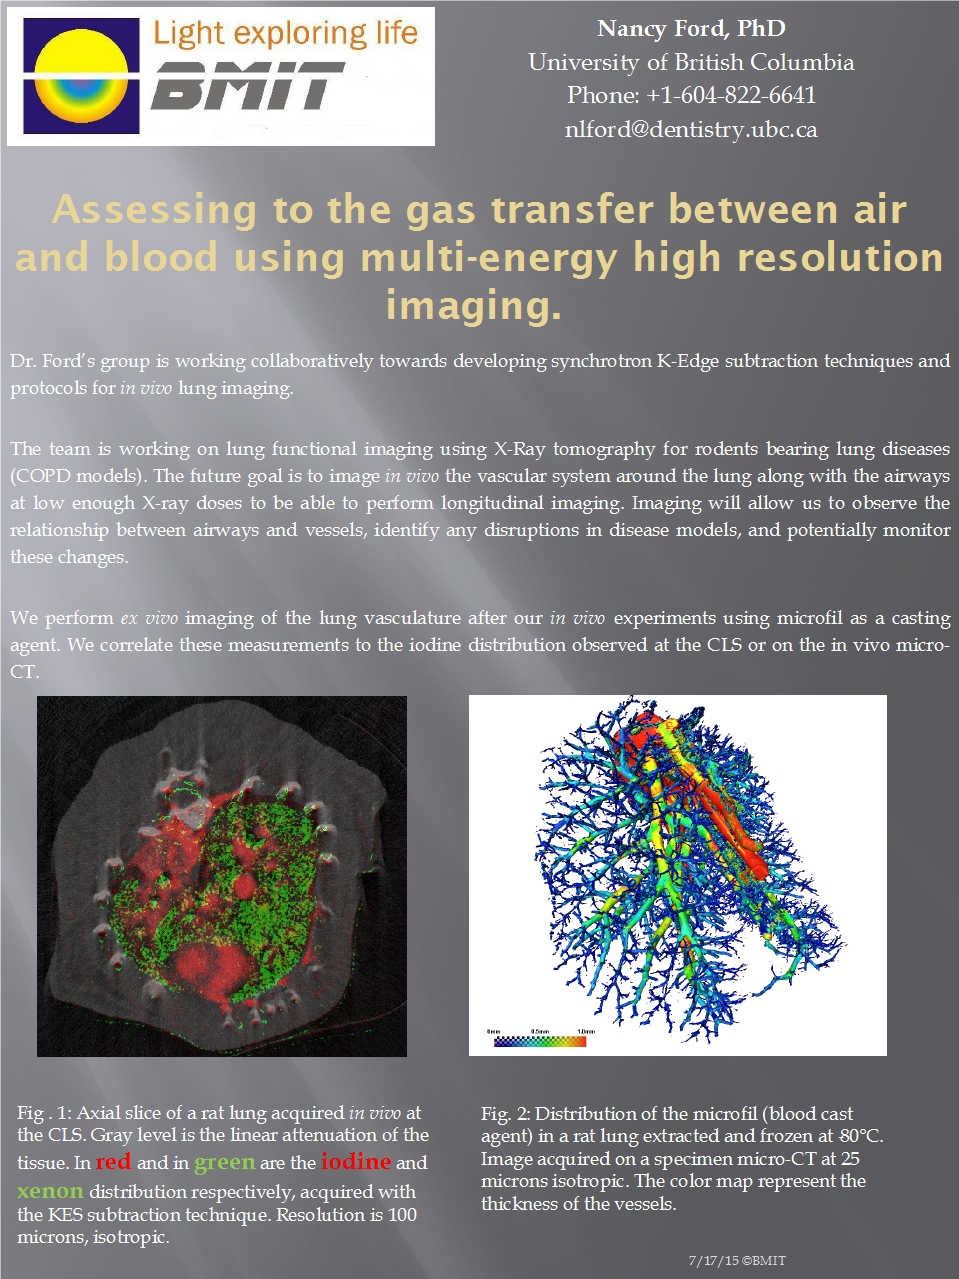 Assessing the Gas Transfer between Air and Blood Using Multi-Energy High Resolution Imaging Image